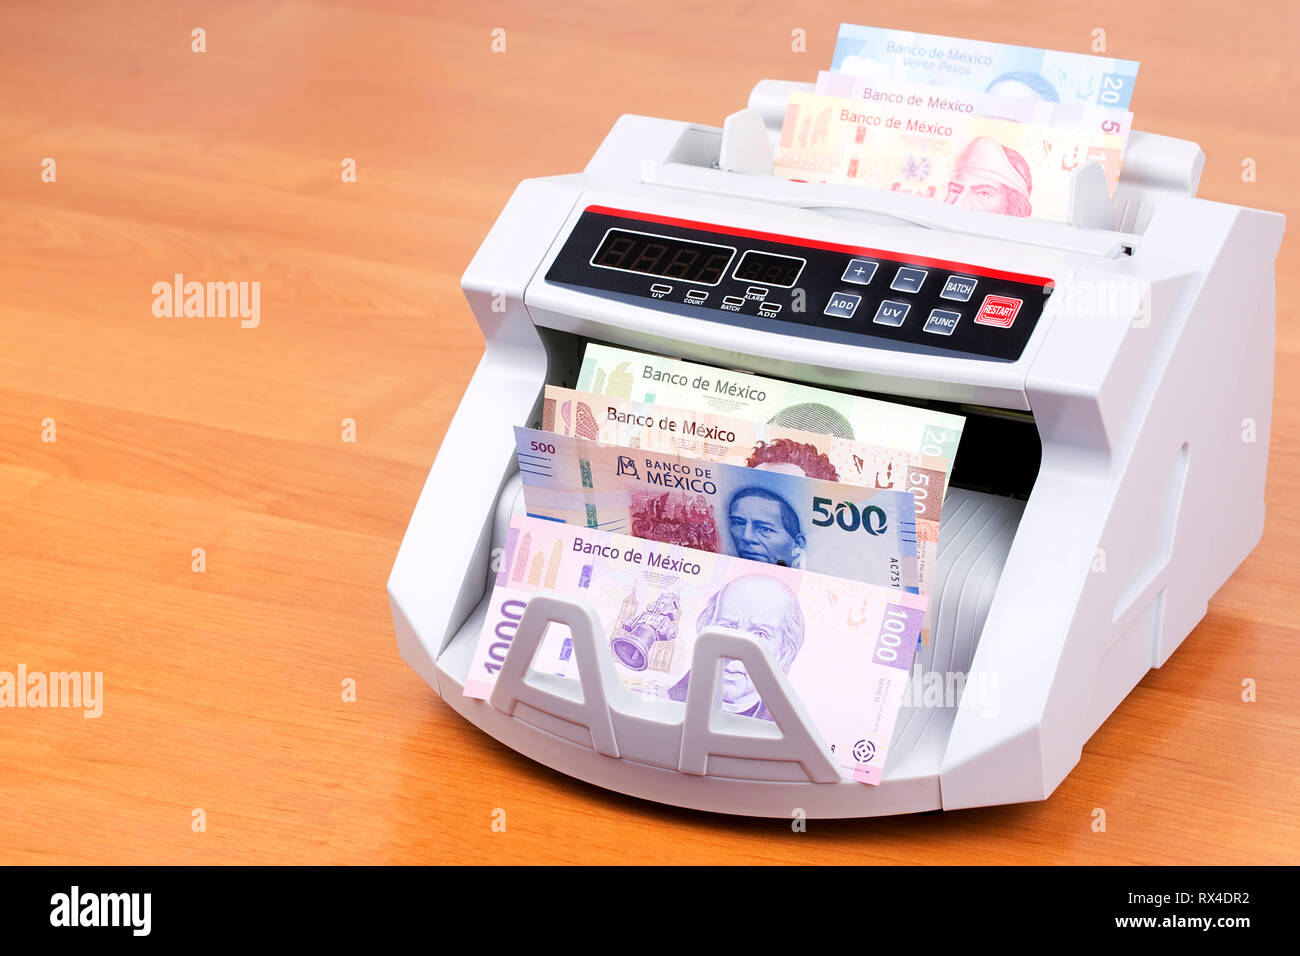 Mexican Peso in a counting machine Stock Photo: 239814486